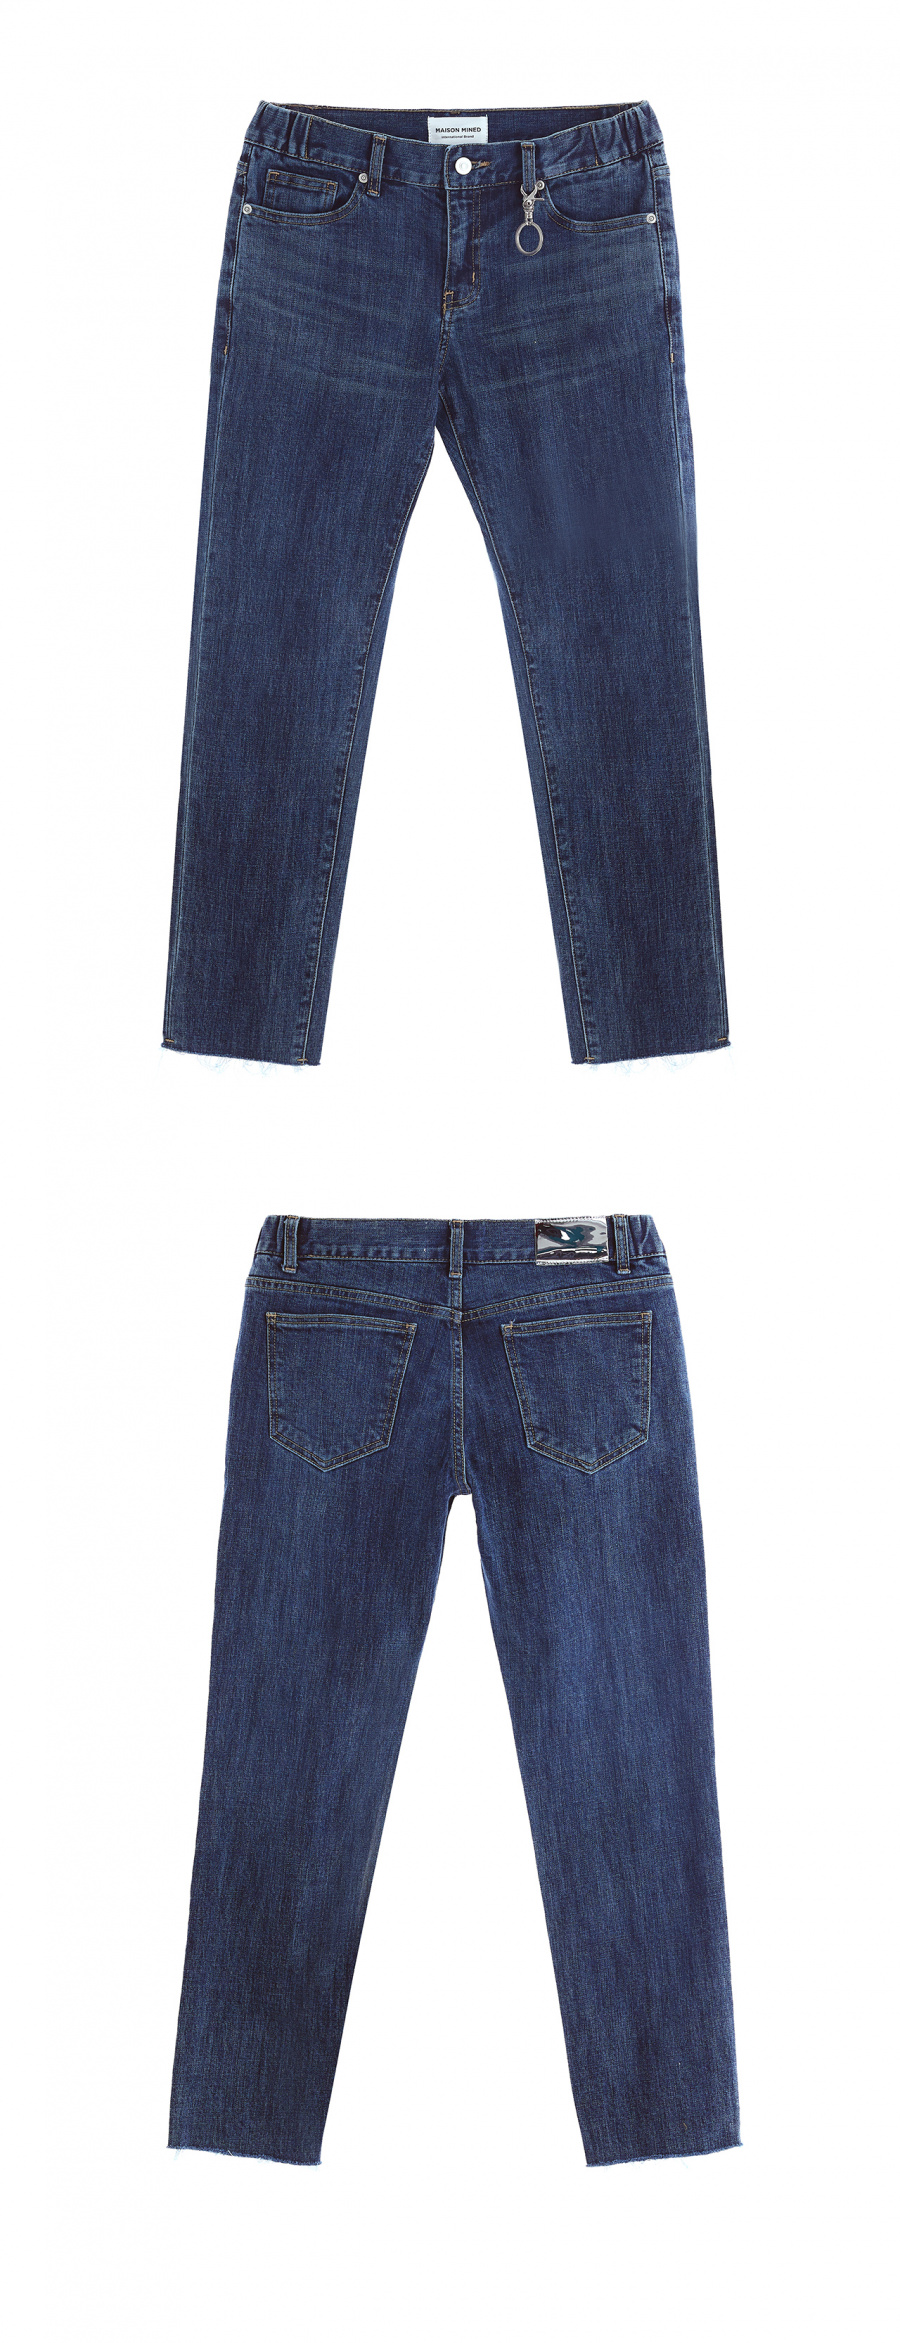 메종미네드(MAISON MINED) CROPPED ELASTIC DENIM TROUSERS